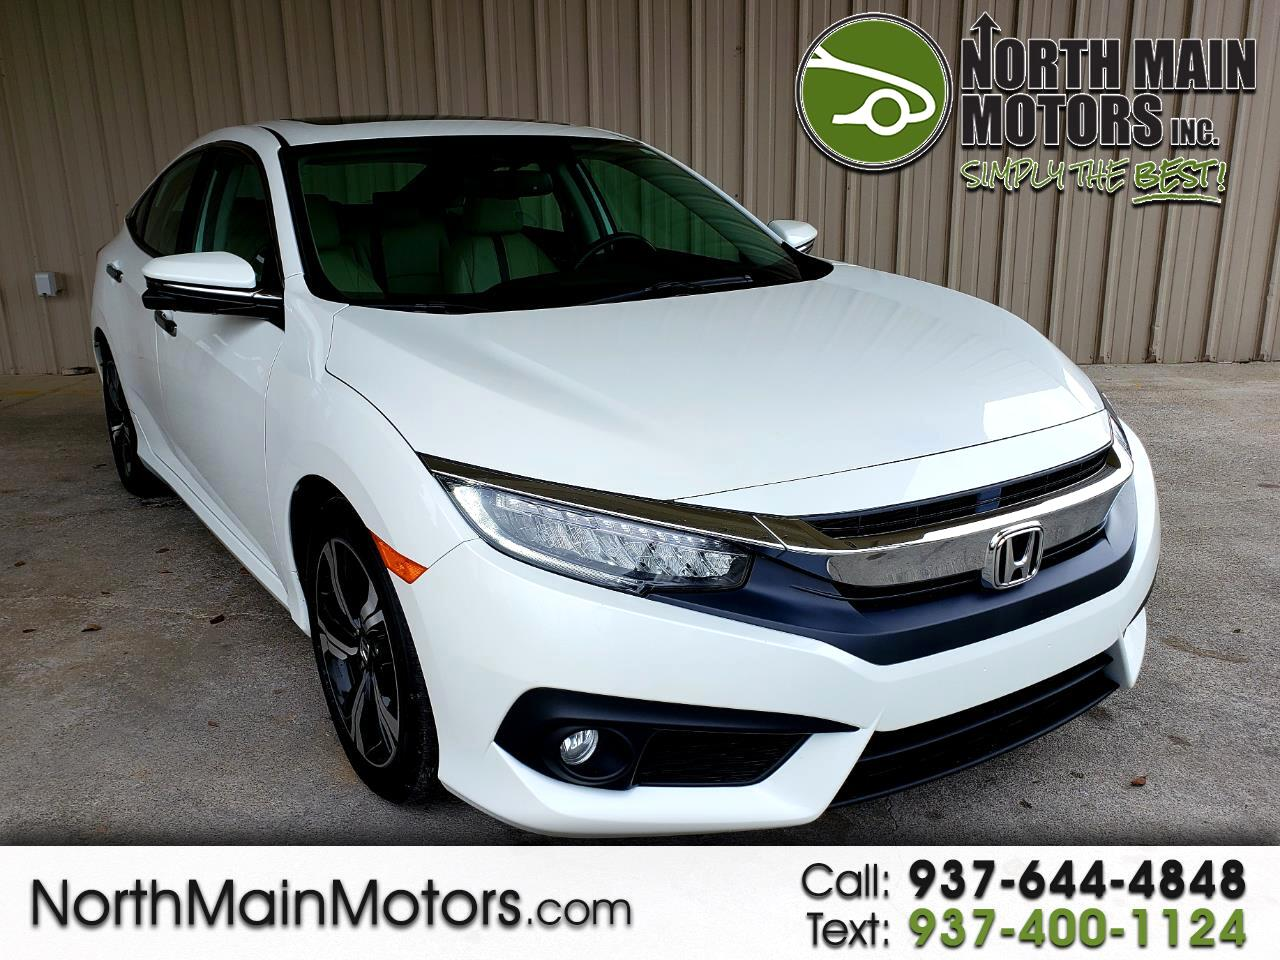 2016 Honda Civic Sedan 4dr CVT Touring